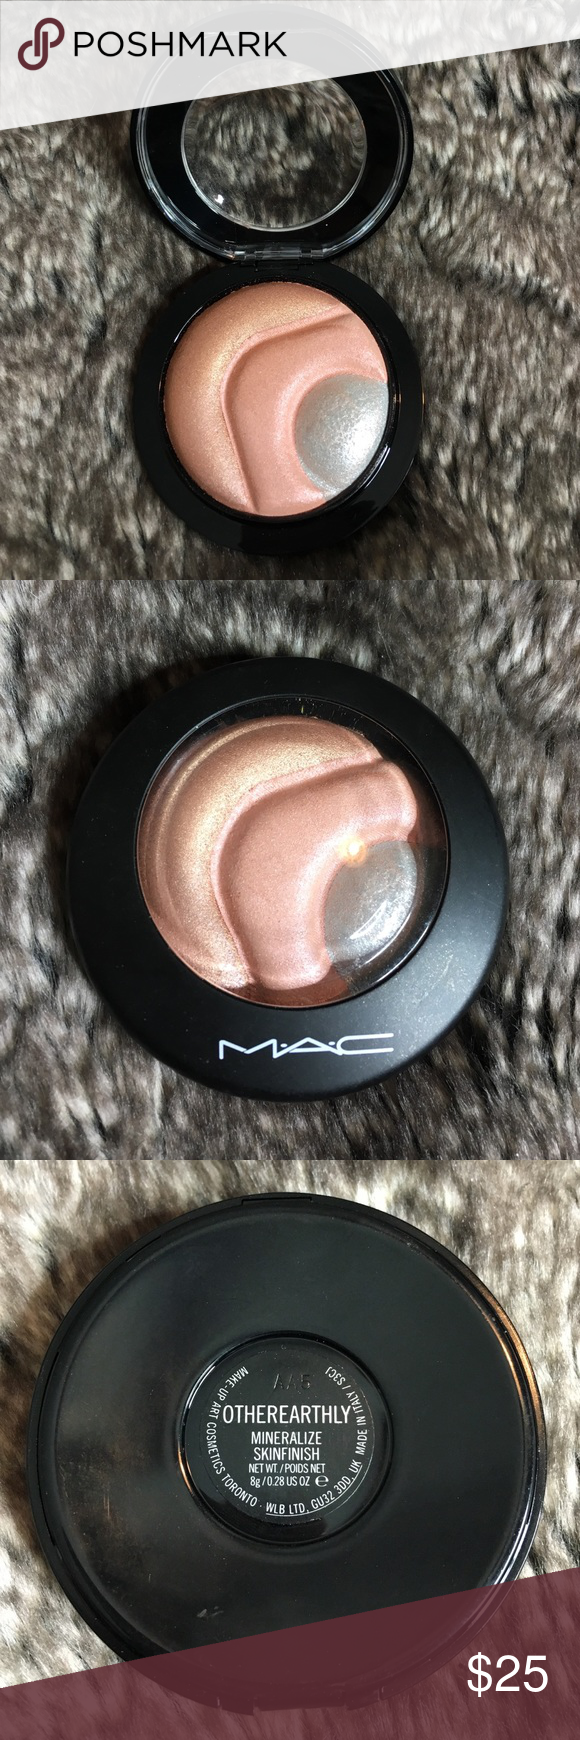 mac otherearthly used twice. authentic and no trades. MAC Cosmetics Makeup Luminizer